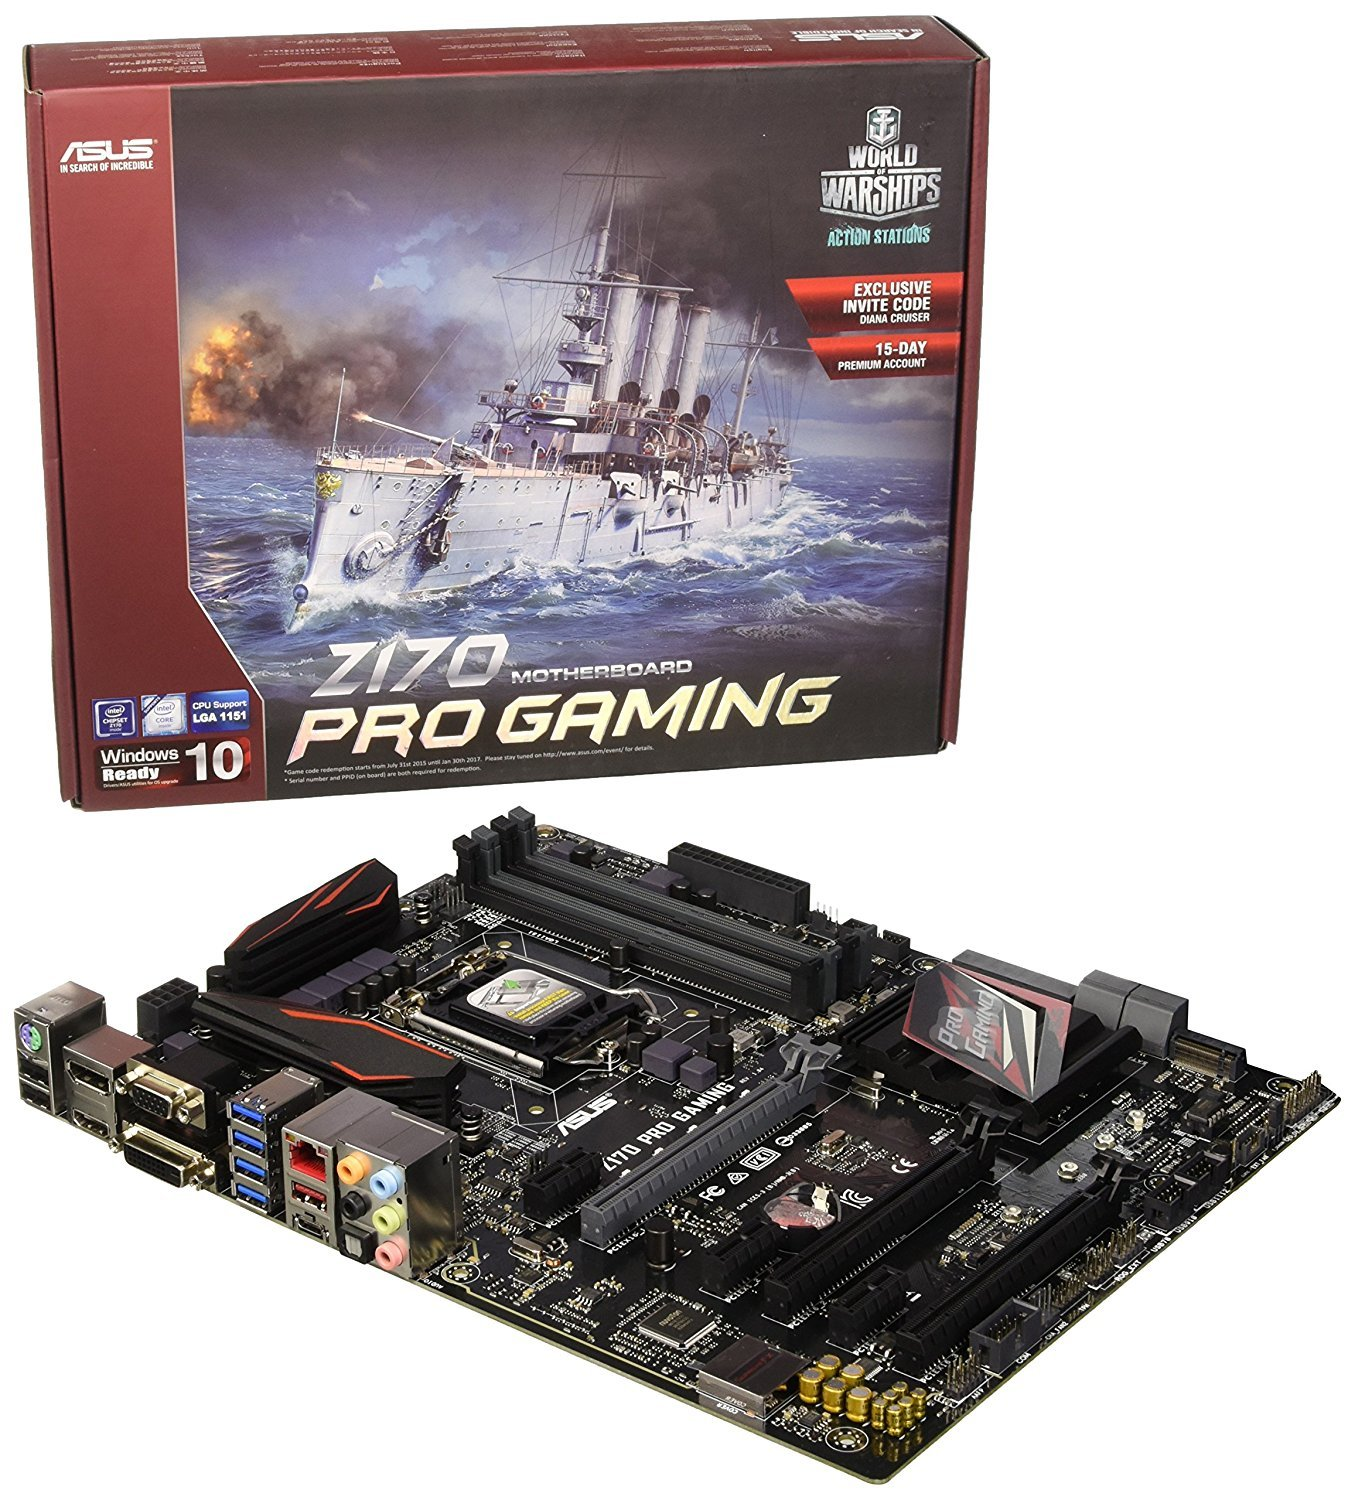 Placa base gaming